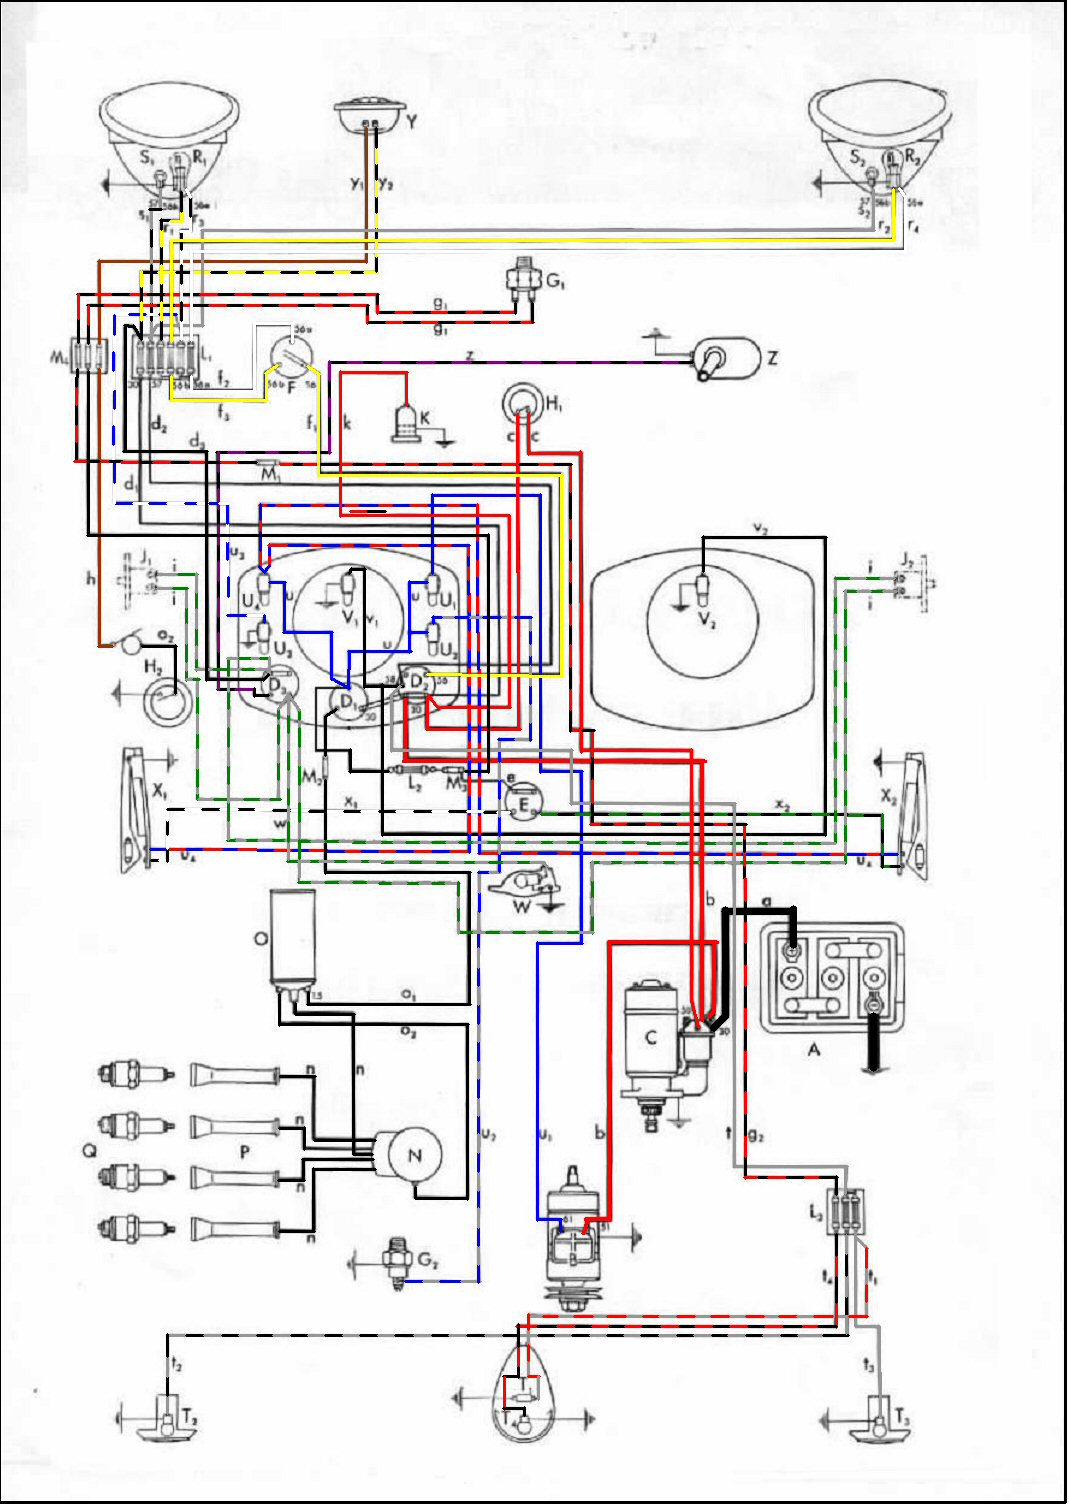 Type 1 Wiring Diagrams 1971 Mustang Convertible Diagram